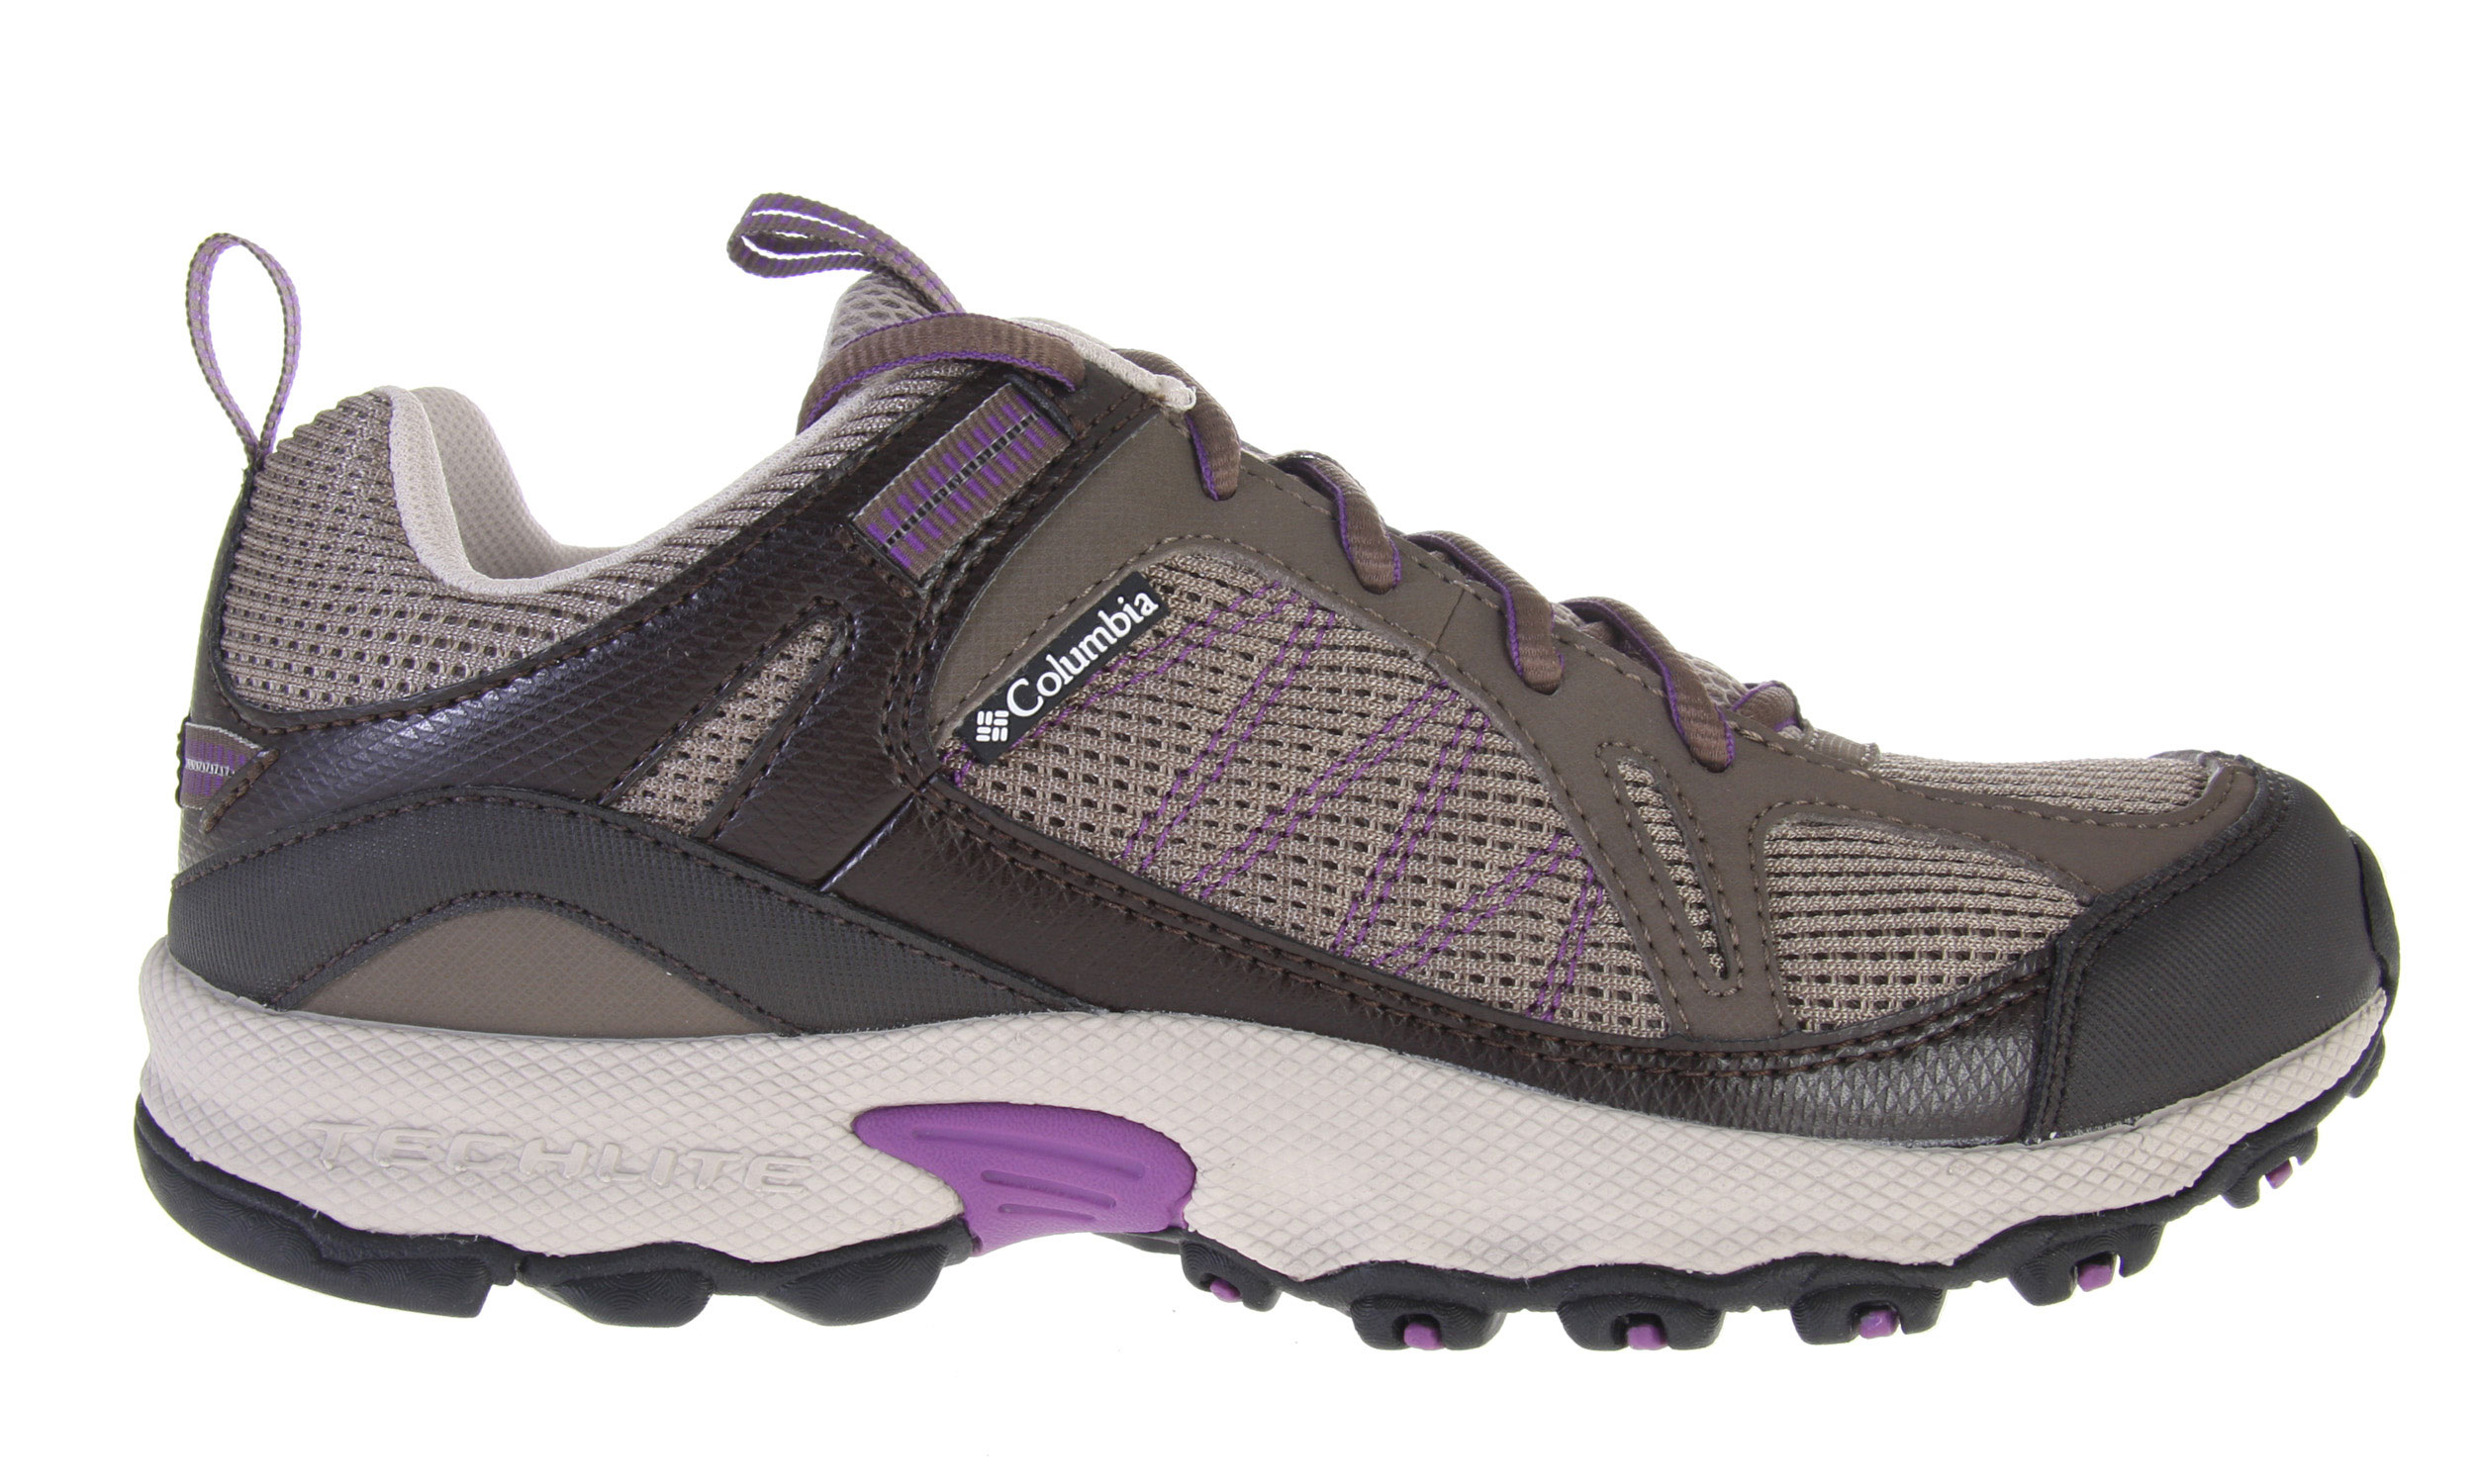 Camp and Hike Slip into the Switchback for low-profile support that looks as good on the street as it does on the single-track. Columbia's revolutionary new Techlite heel moves dense stabilizing elements to the outside (putting softer material directly against your foot) to provide a cushioned and conforming fit to alleviate pain and irritation where trail runners told us they felt it most. Omni-Grip traction on the rubber sole grips rocks, dirt, mud and just about anything else you encounter on off-road adventures. Breathable mesh and a soft material in the flex zones mean superior comfort with great agility and ease of movement. The gusseted tongue keeps out rocks, sticks, and dirt while light, sinewy overlays offer additional protection without adding unnecessary bulk. Key Features of the Columbia Switchback Low Women's Hiking Shoes: Open breathable mesh tongue and vamp Gusseted tongue to keep out unwanted debris Light and sinewy synthetic overlays for support and protection Contour Comfort 1D footbed with AgION anti-odor treatment Removable contoured, single-density EVA footbed, which provides cushioning, comfort and support Low profile Techlite midsole for nimble, flexible feel in a lightweight package Non-marking Omni-Grip rubber compound with a rugged trail design - $48.95